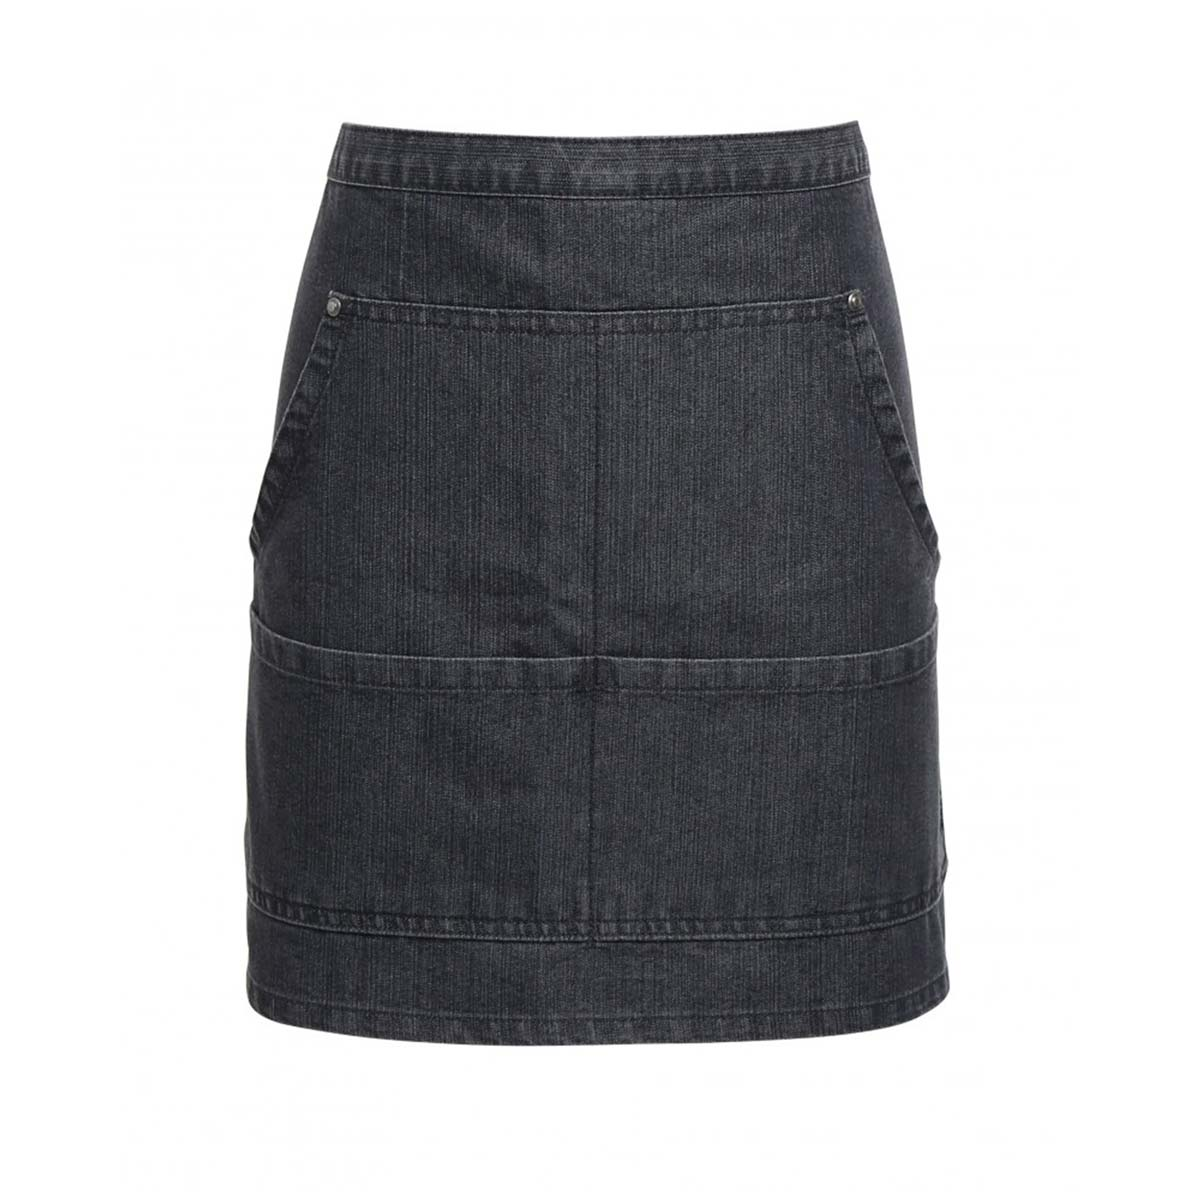 Jeans Stitch Denim Waist Apron - pr125_black-denim